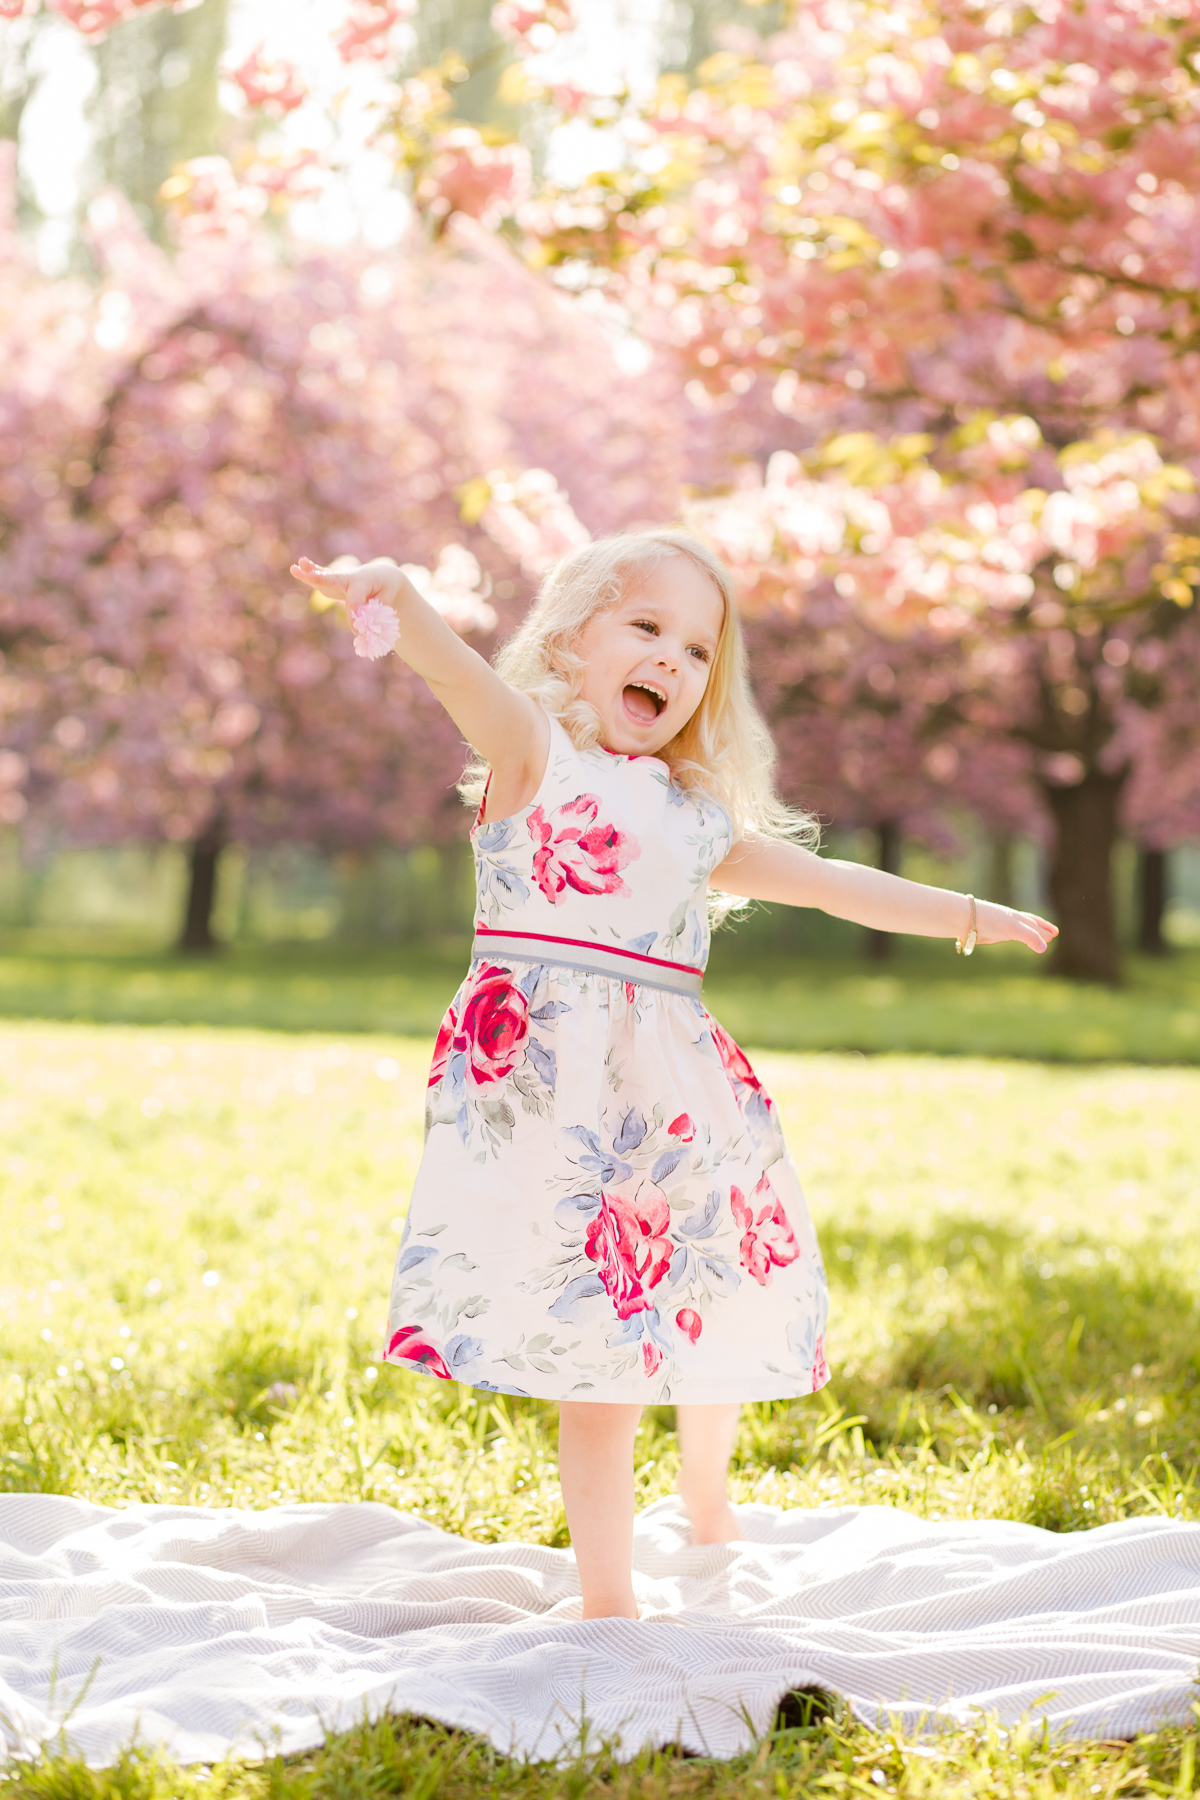 when-does-sakura-bloom-in-paris_cherry-blossoms-family-photo-session_-Katie-donnelly-photography_004.jpg